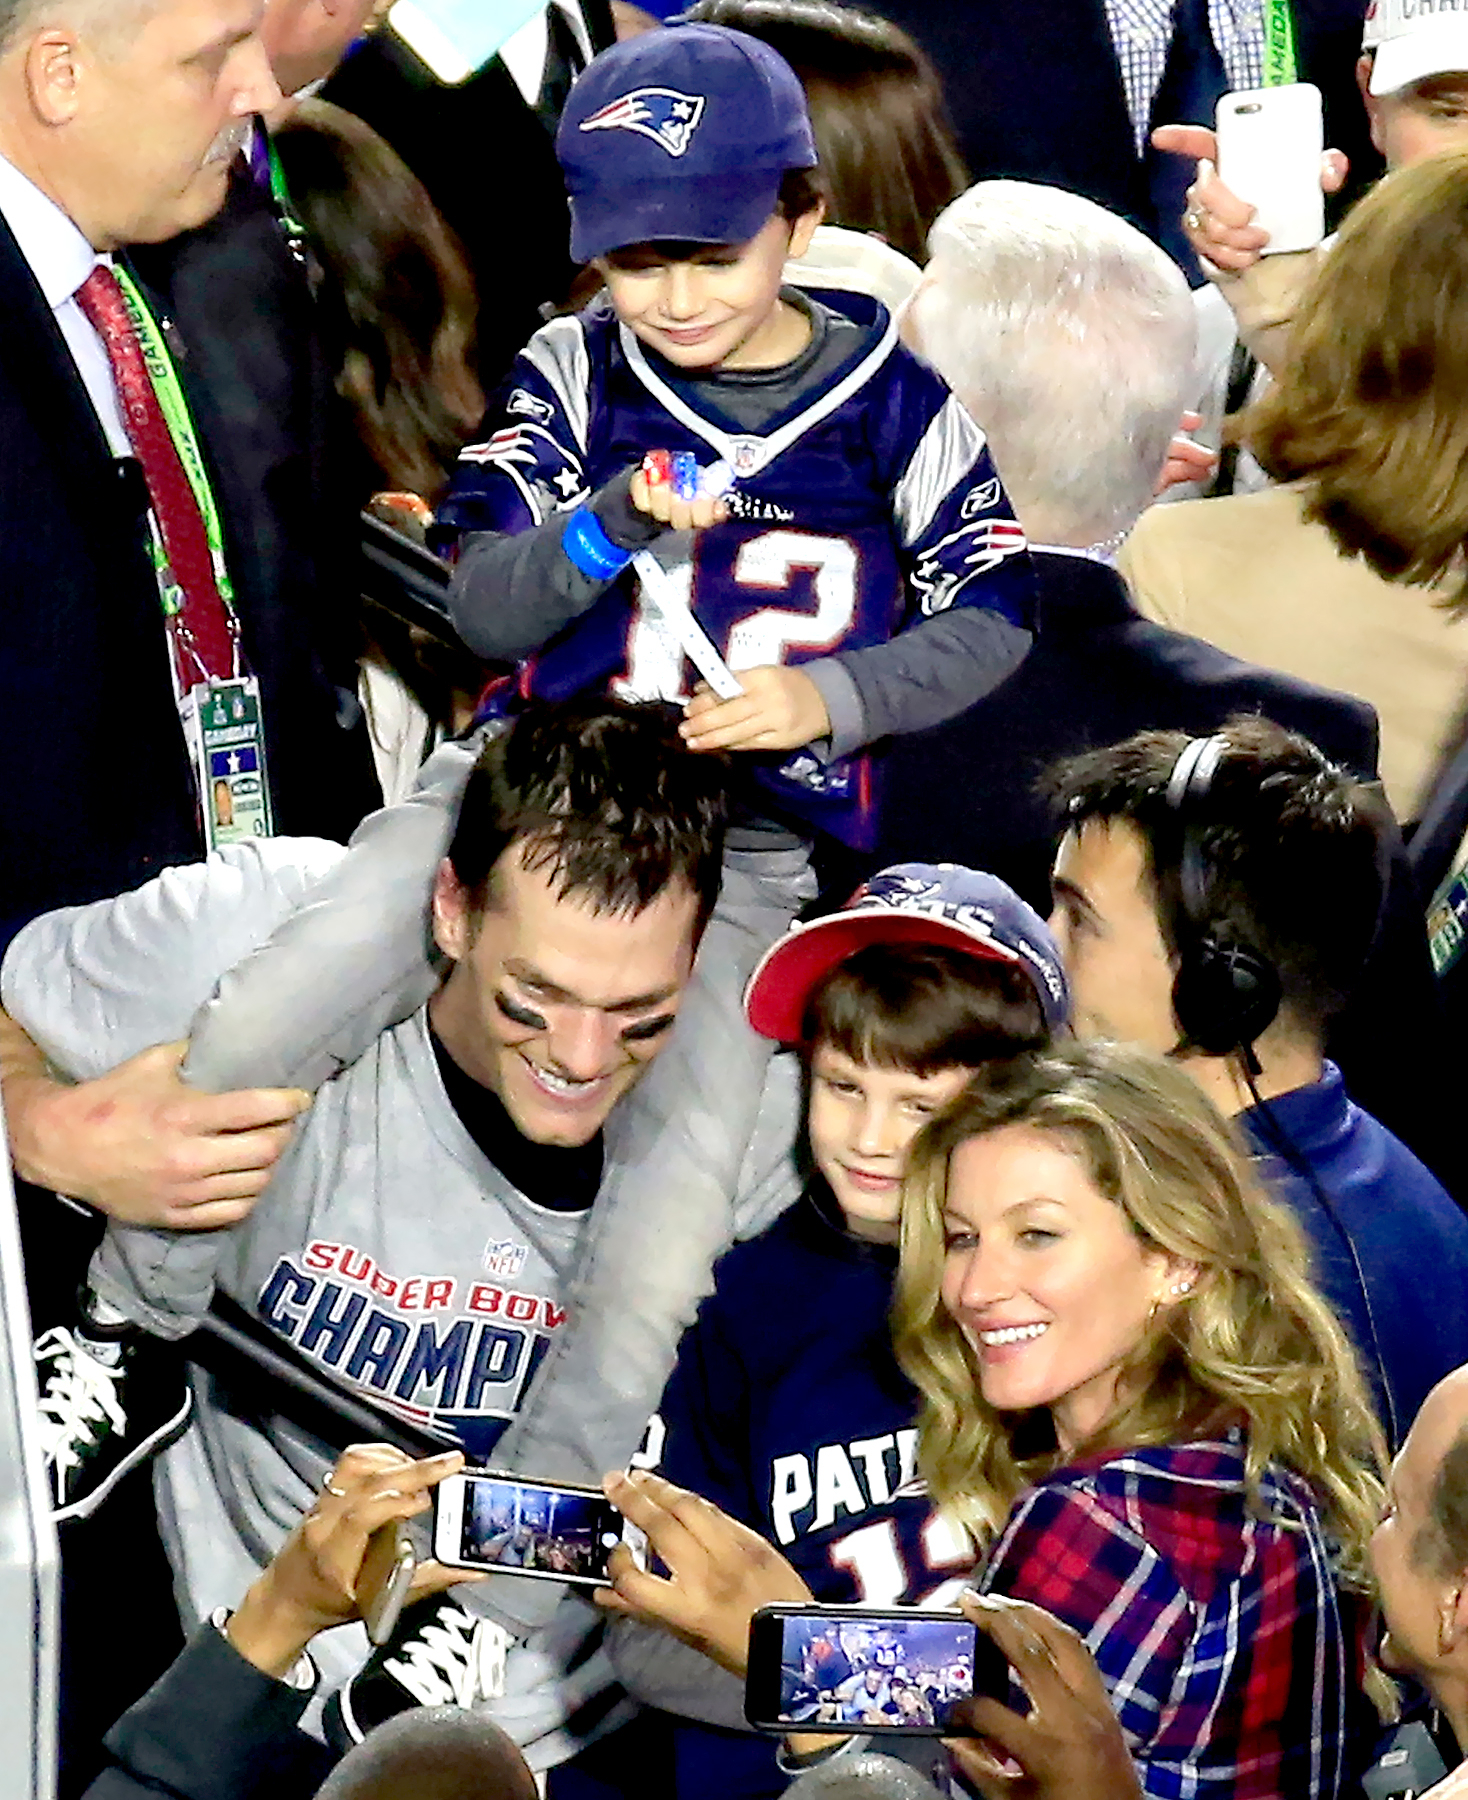 Tom Brady #12 of the New England Patriots celebrates defeating the Seattle Seahawks with his wife Gisele Bundchen and son Benjamin during Super Bowl XLIX at University of Phoenix Stadium on February 1, 2015 in Glendale, Arizona.